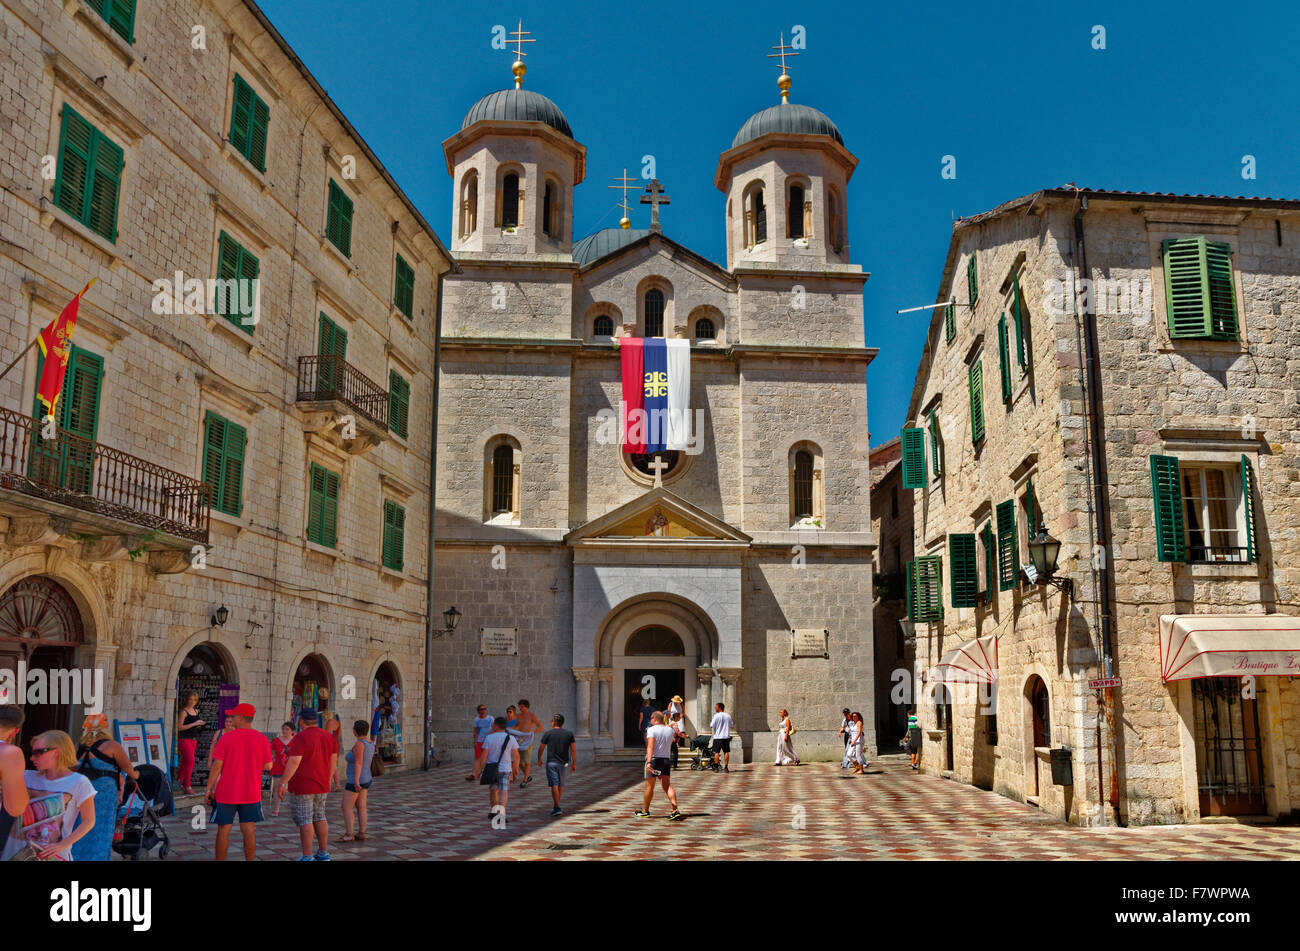 St Nicholas's Church Kotor Old Town, Montenegro - Stock Image